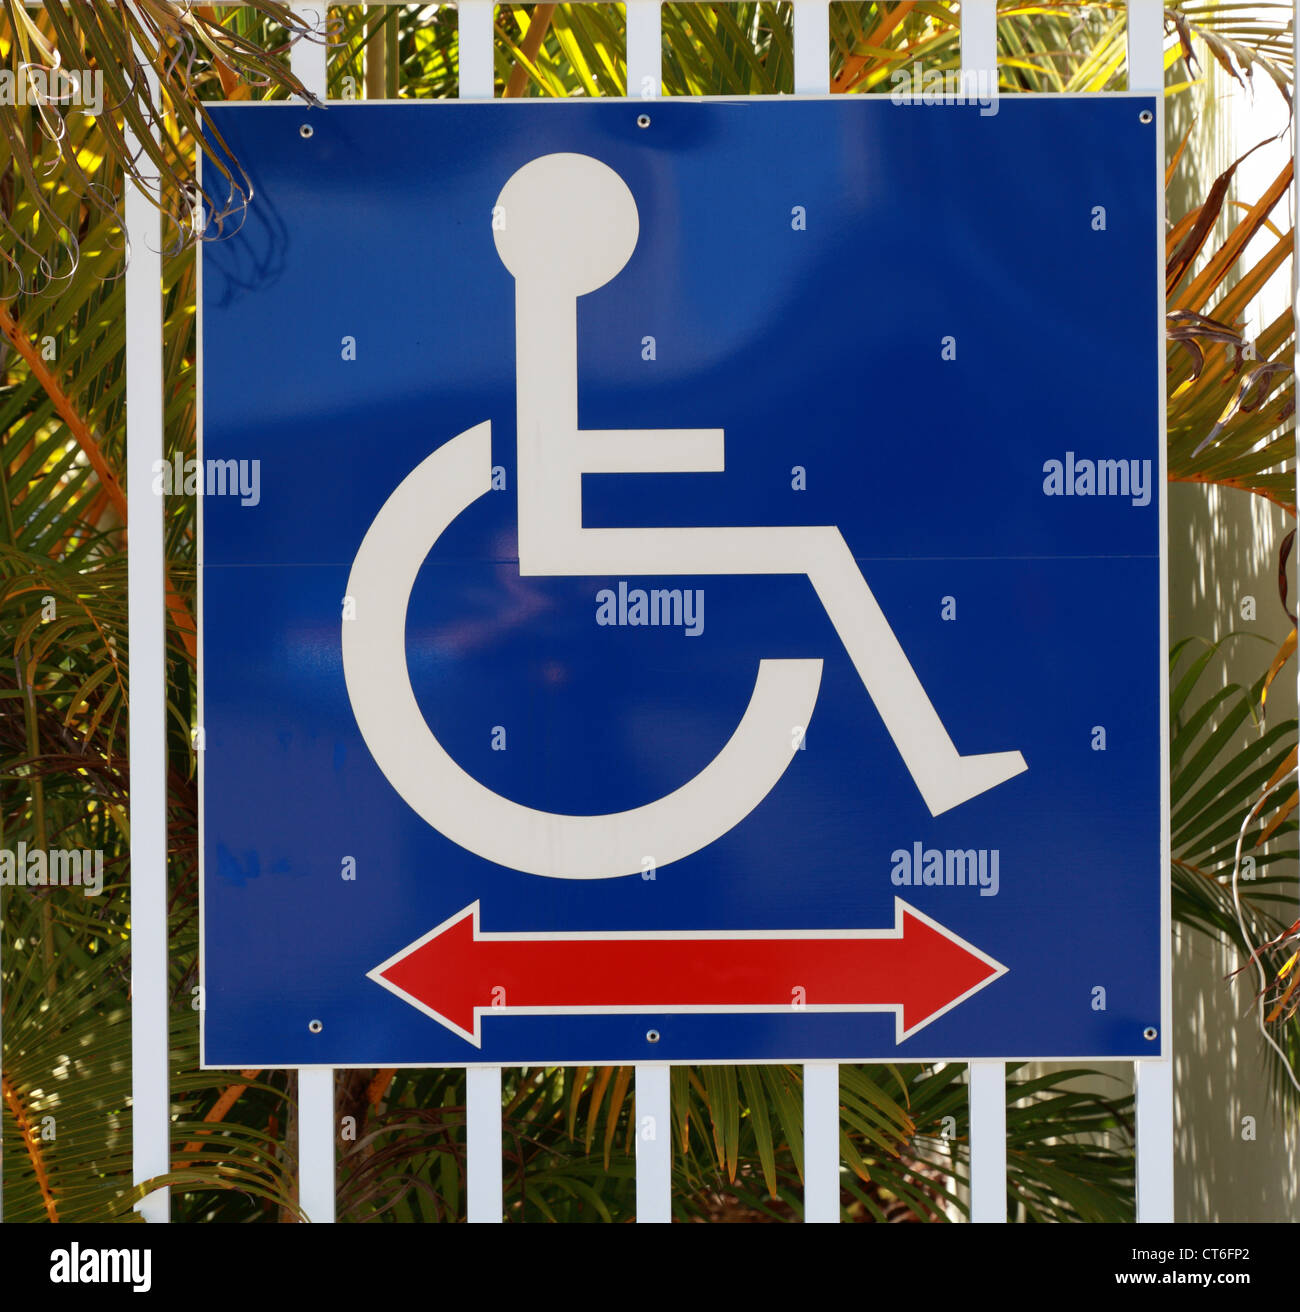 Disabled pictograph sign indicating a direction - Stock Image